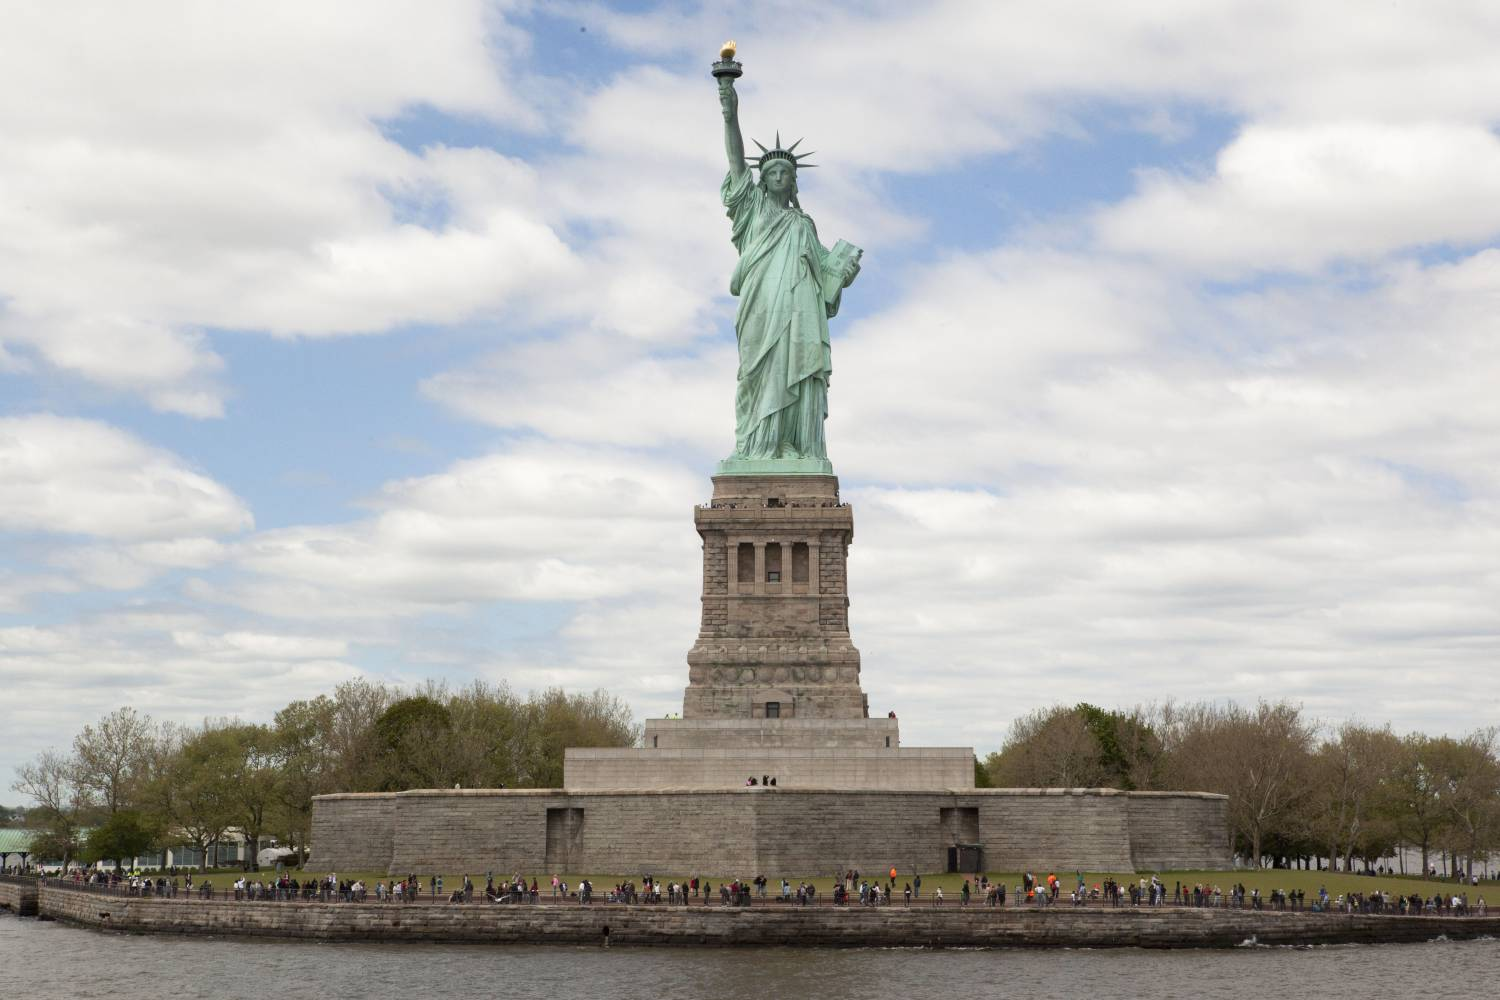 Statue of Liberty, day